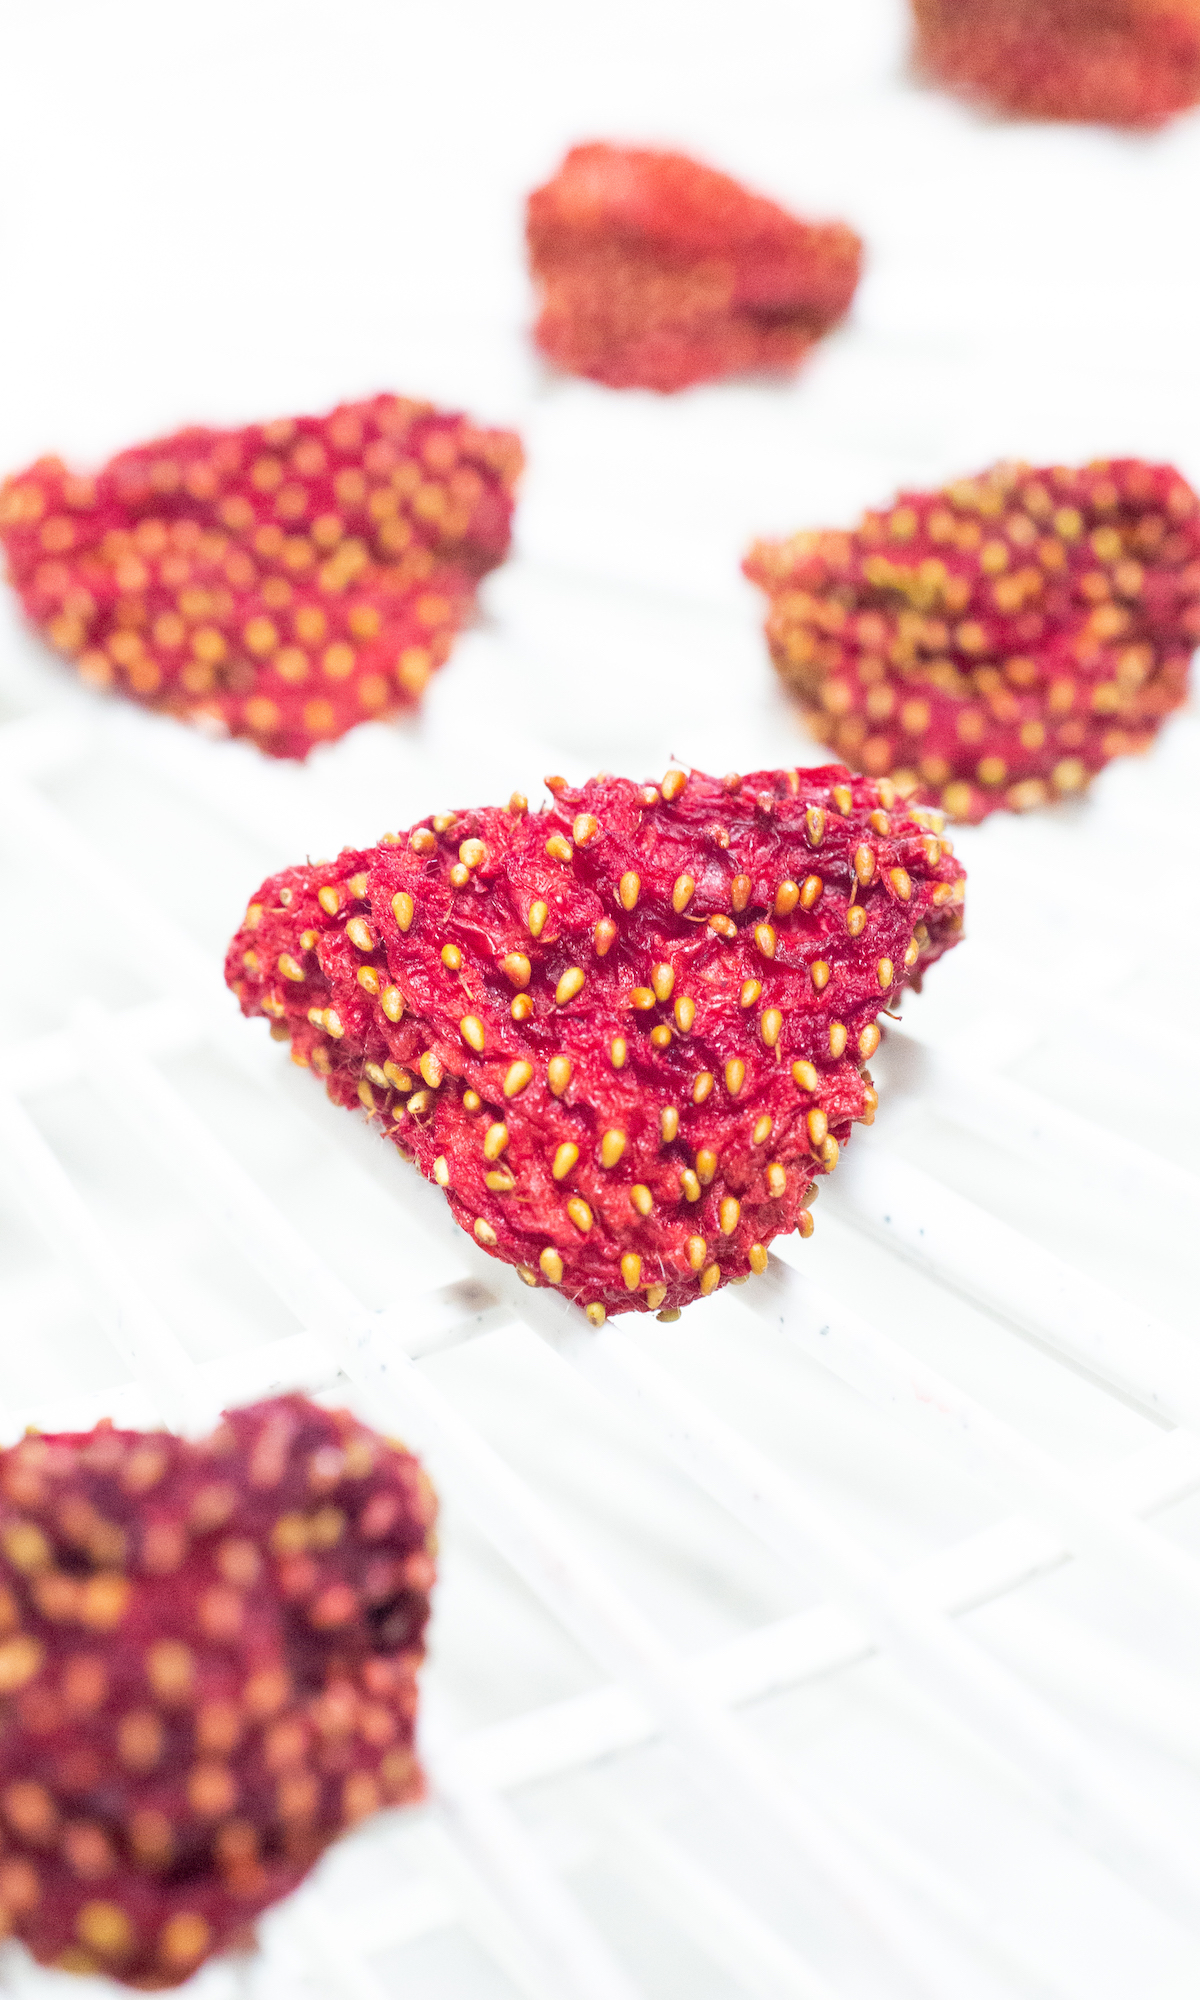 Two rows of whole strawberries that have been dehydrated sit on a dehydrator tray